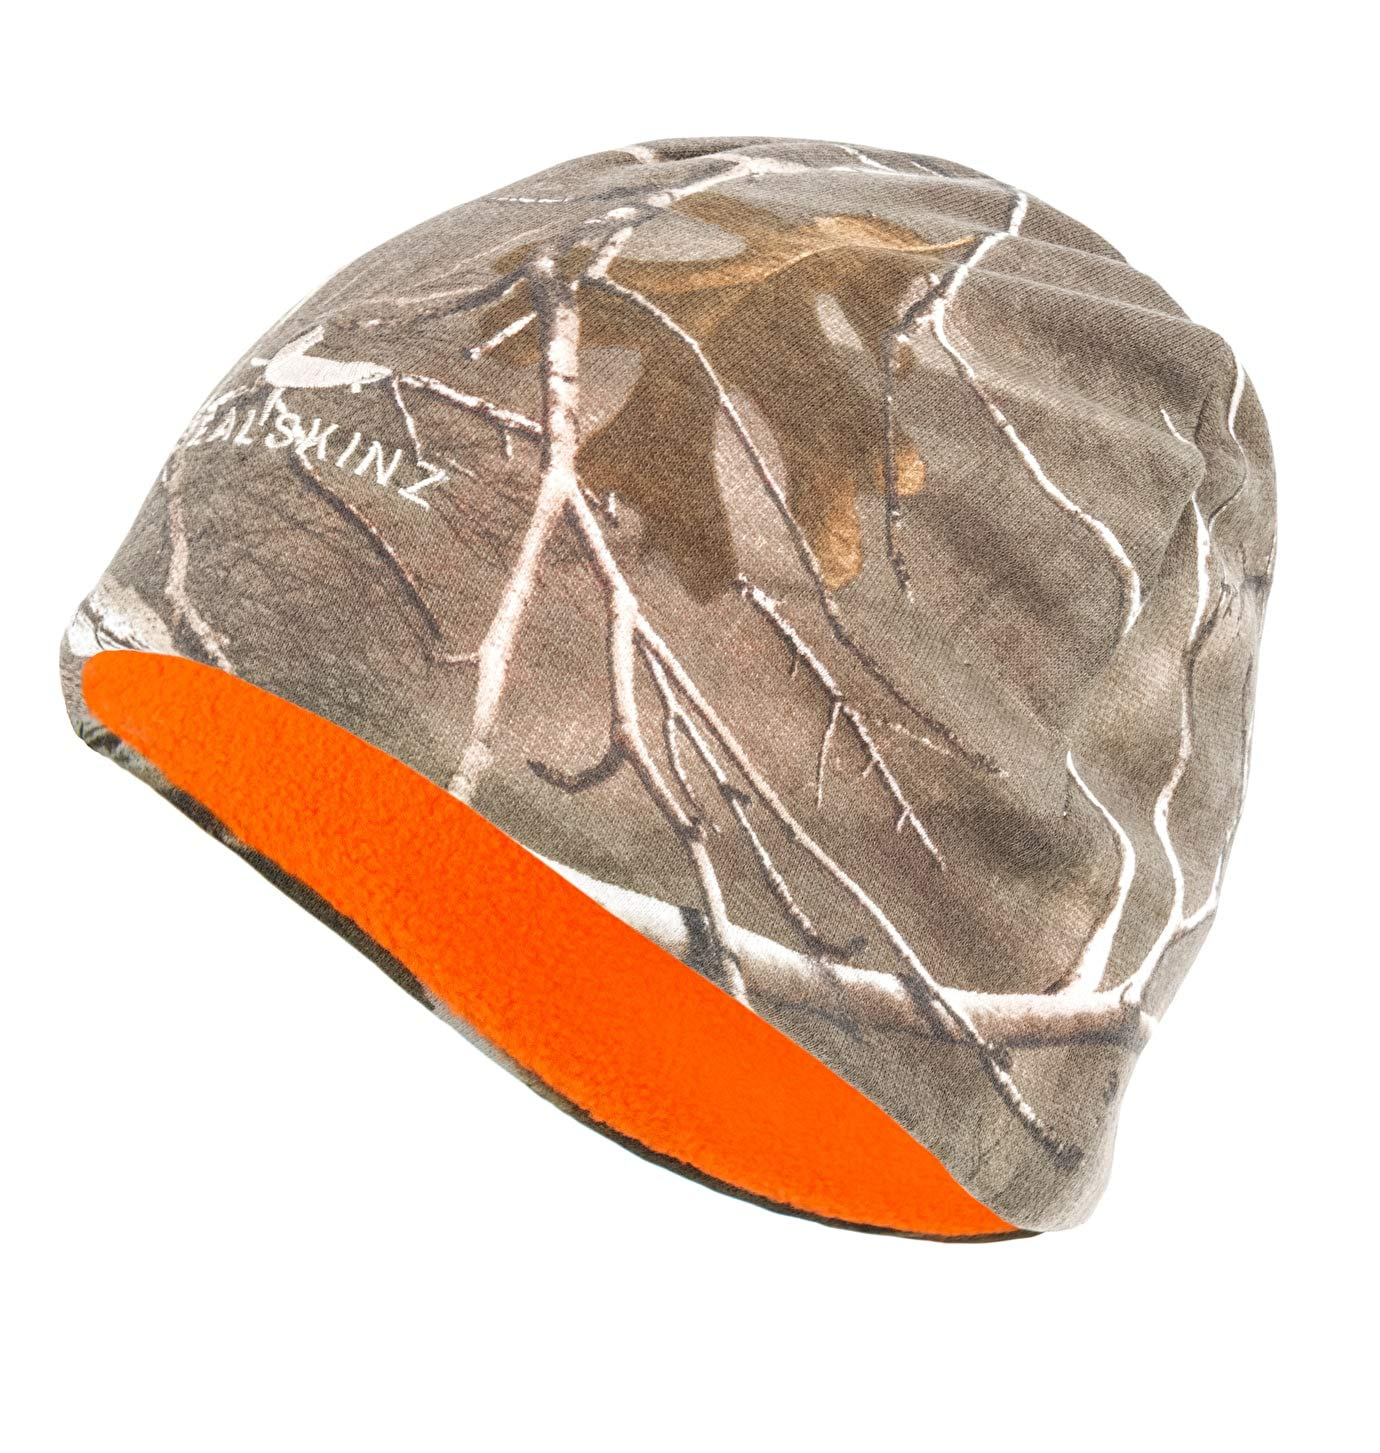 SEALSKINZ Unisex Waterproof Cold Weather Realtree Xtra Camo Reversible Beanie, Realtree/Beige/Orange, Small/Medium by SEALSKINZ